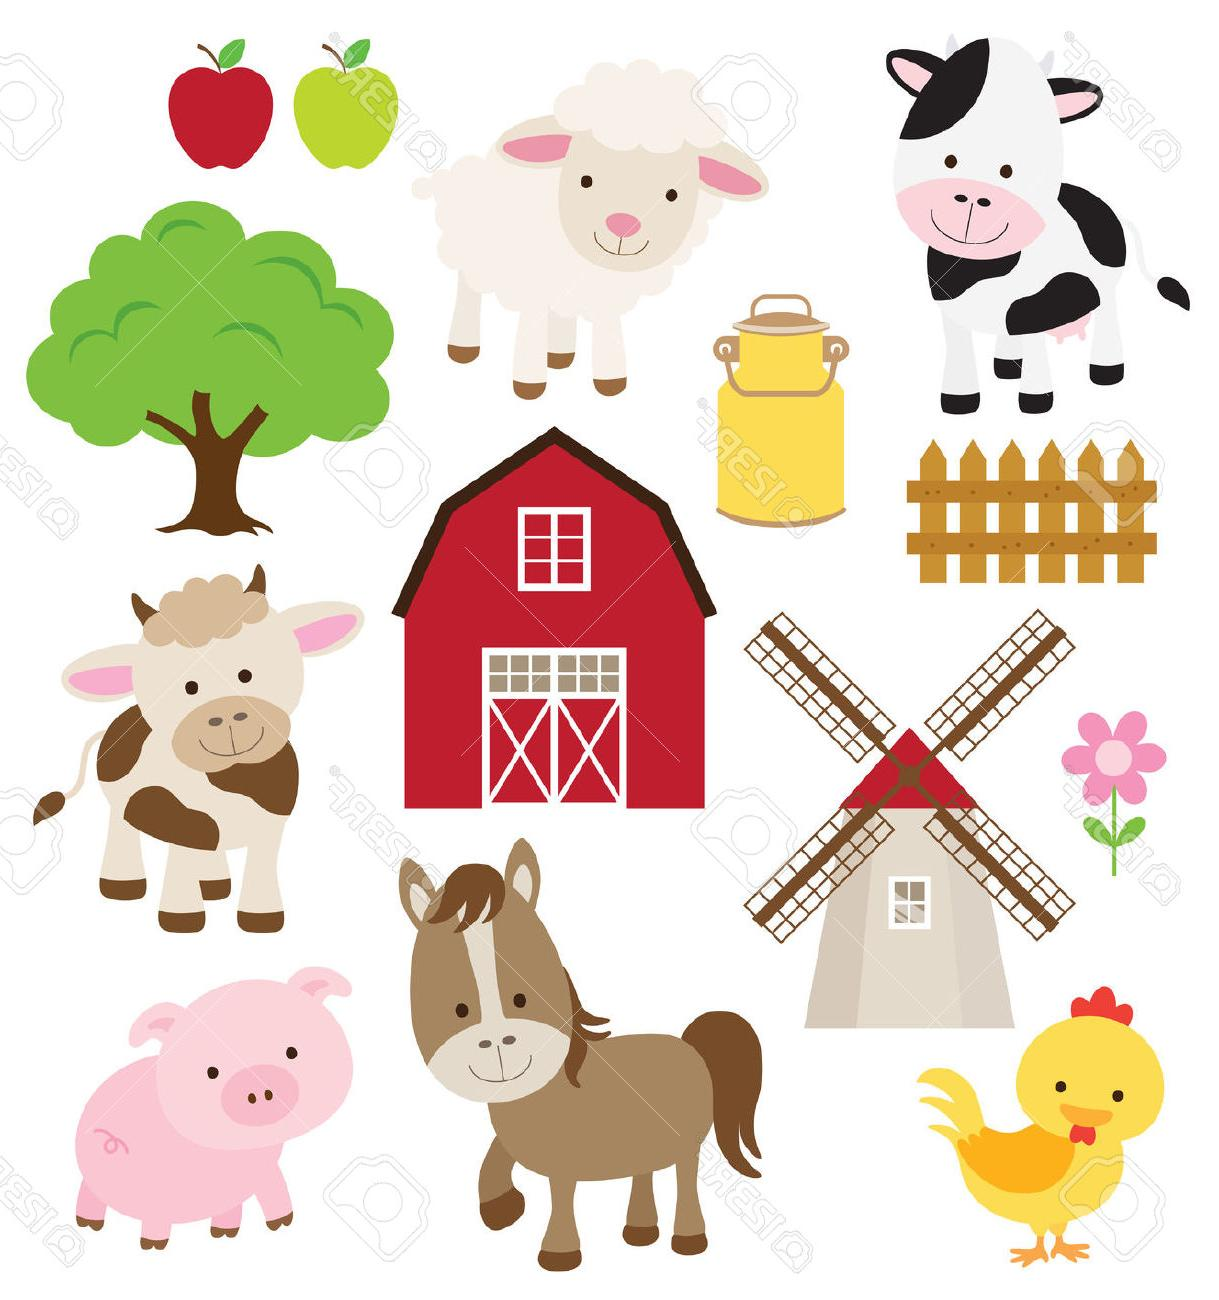 hight resolution of 1219x1300 best free vector illustration of farm animals and related items